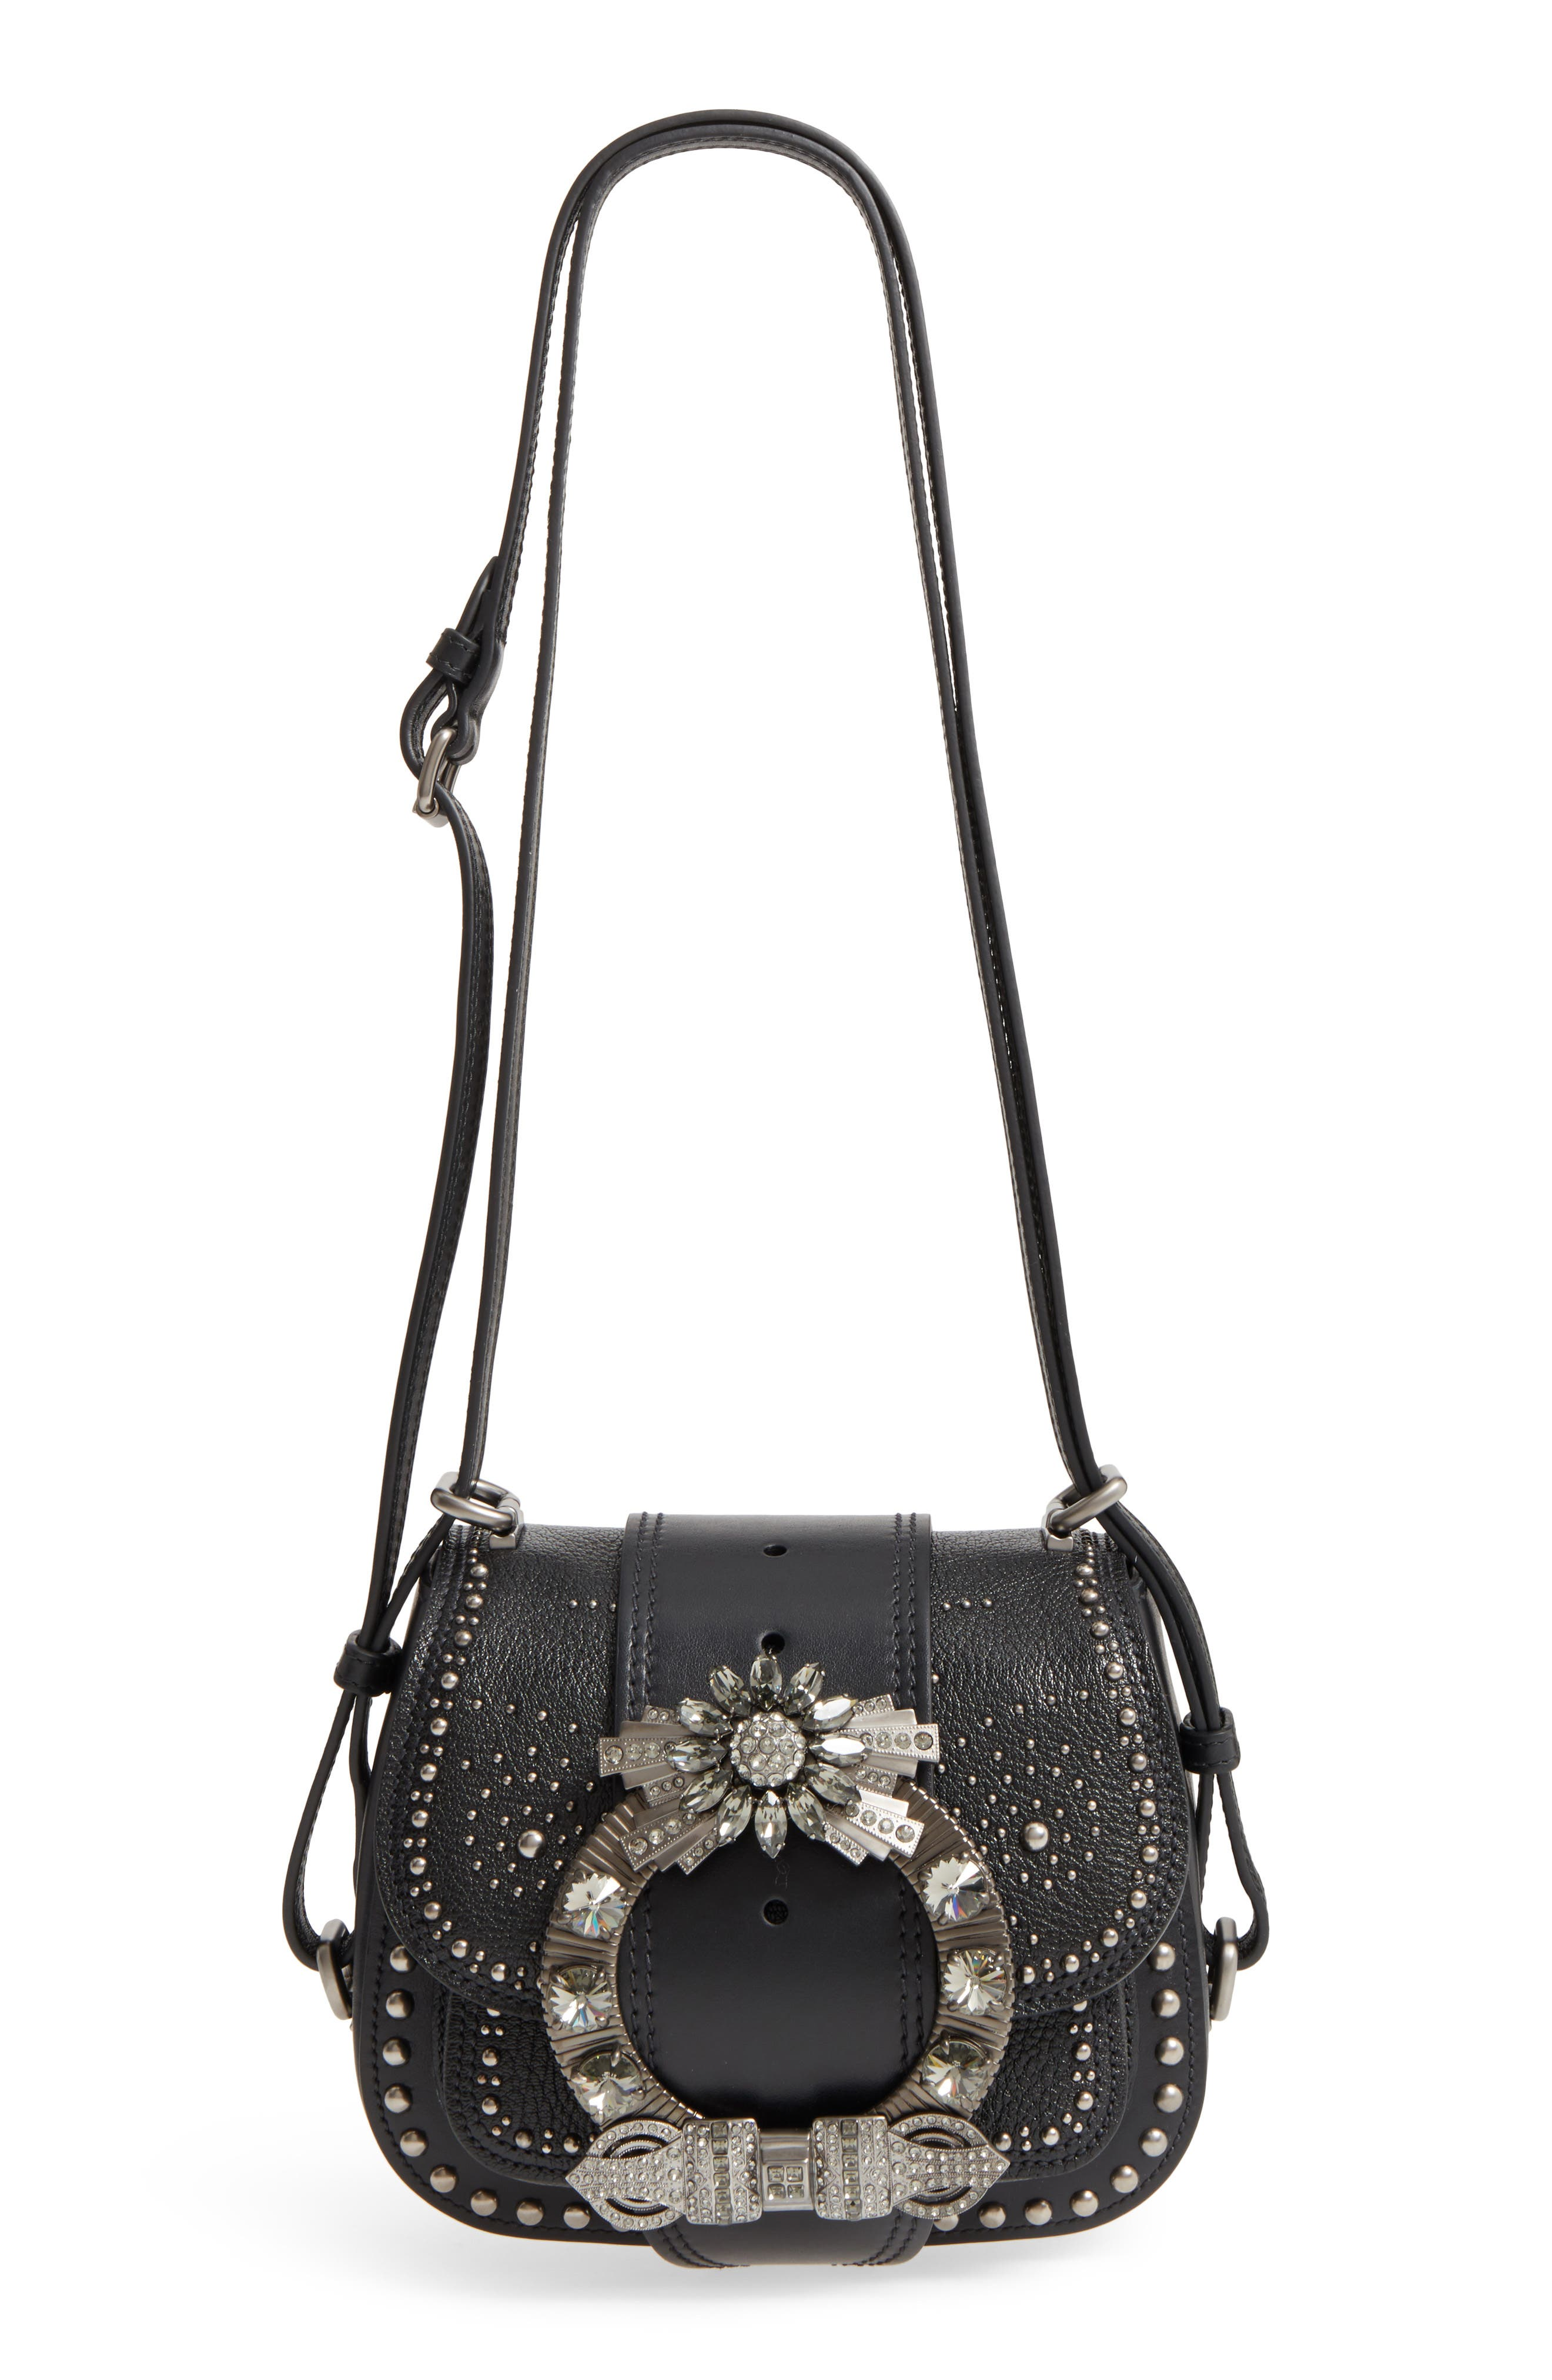 Dahlia Leather Shoulder Bag,                             Main thumbnail 1, color,                             NERO